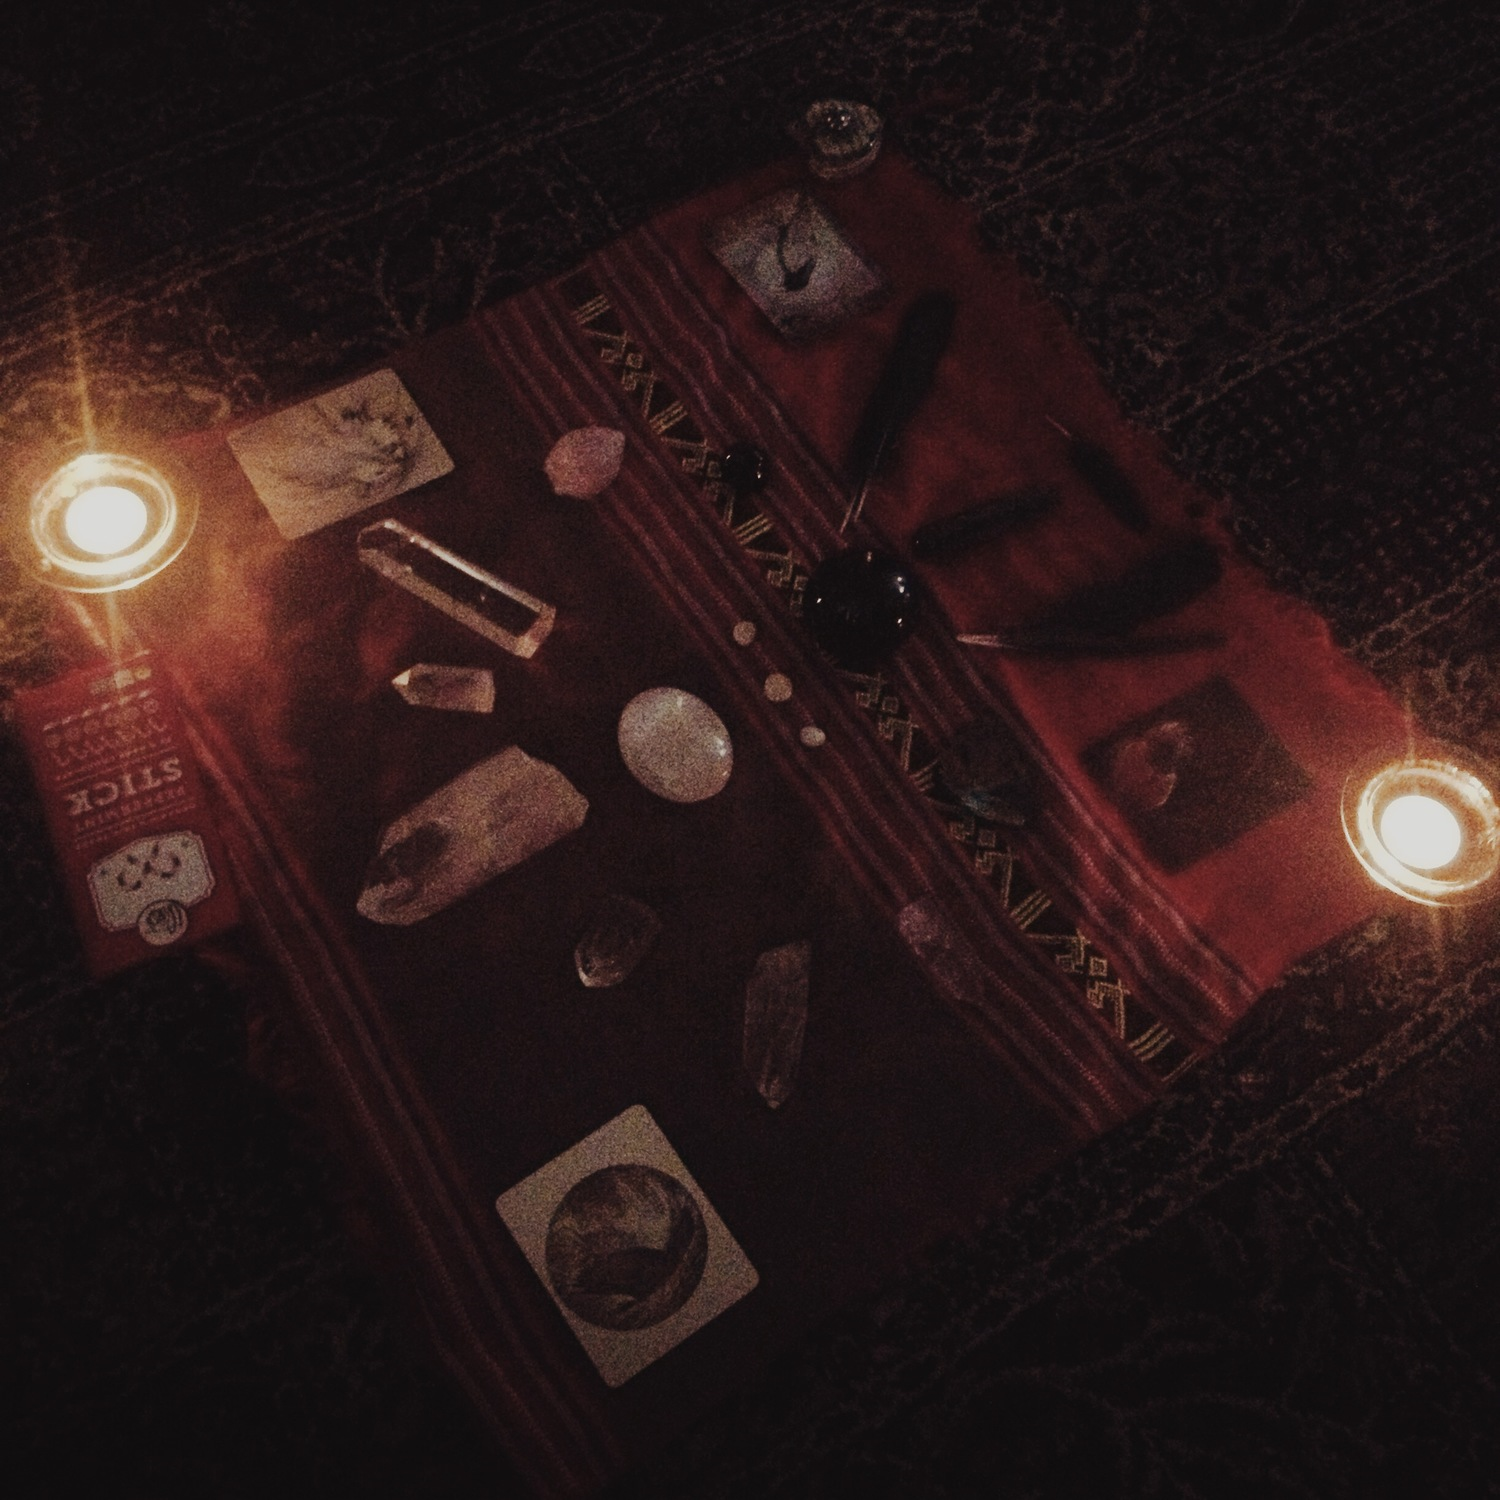 My 2013 Winter Solstice altar included crystals, Crow feathers, candles, and oracle cards. This altar represented the duality of both light, and darkness.